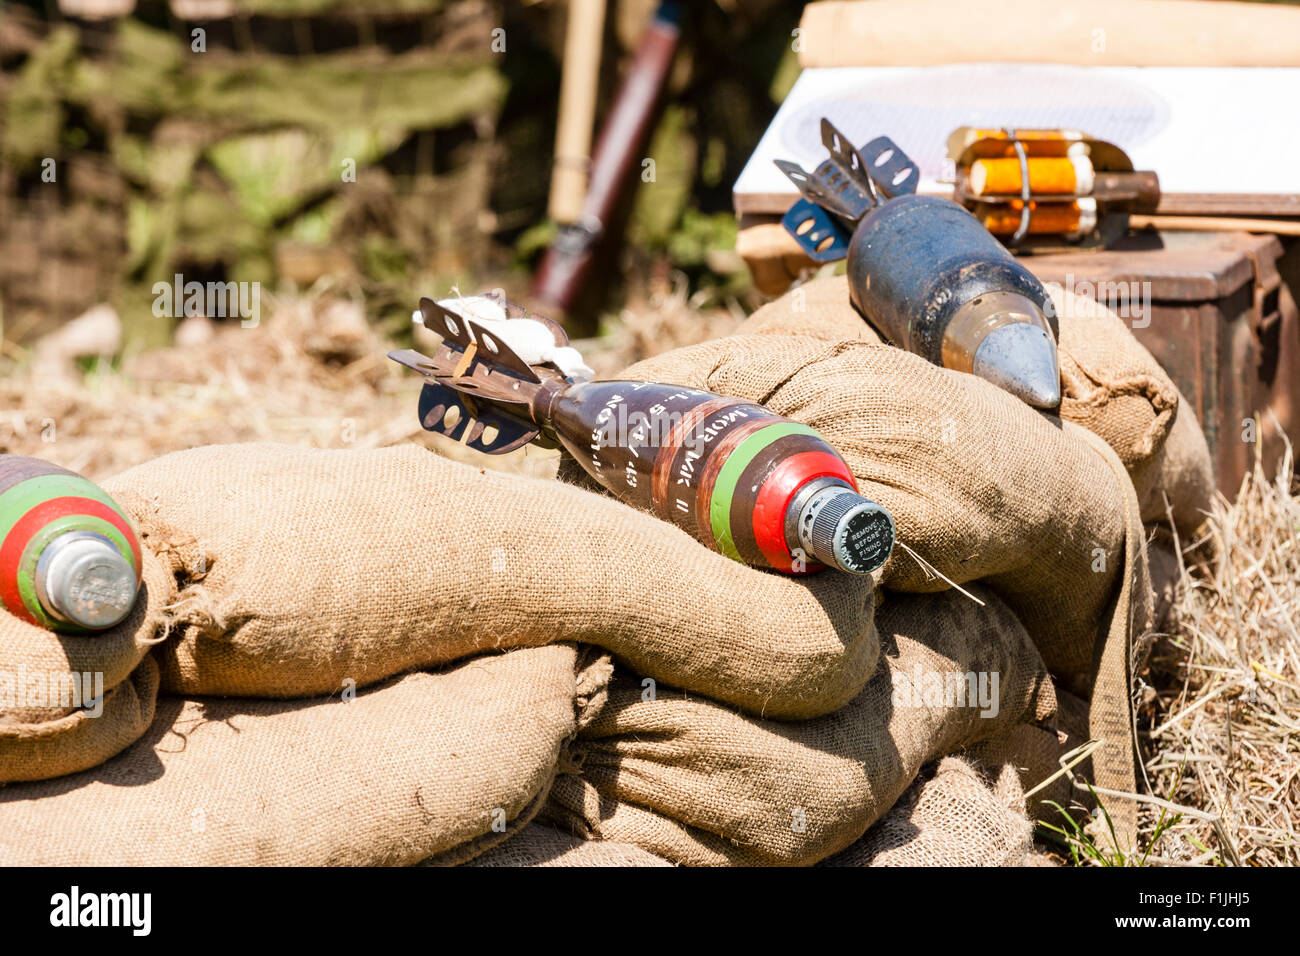 Second world war re-enactment. British types of 3 inch mortar bombs, mark 2, laying on sandbags - Stock Image